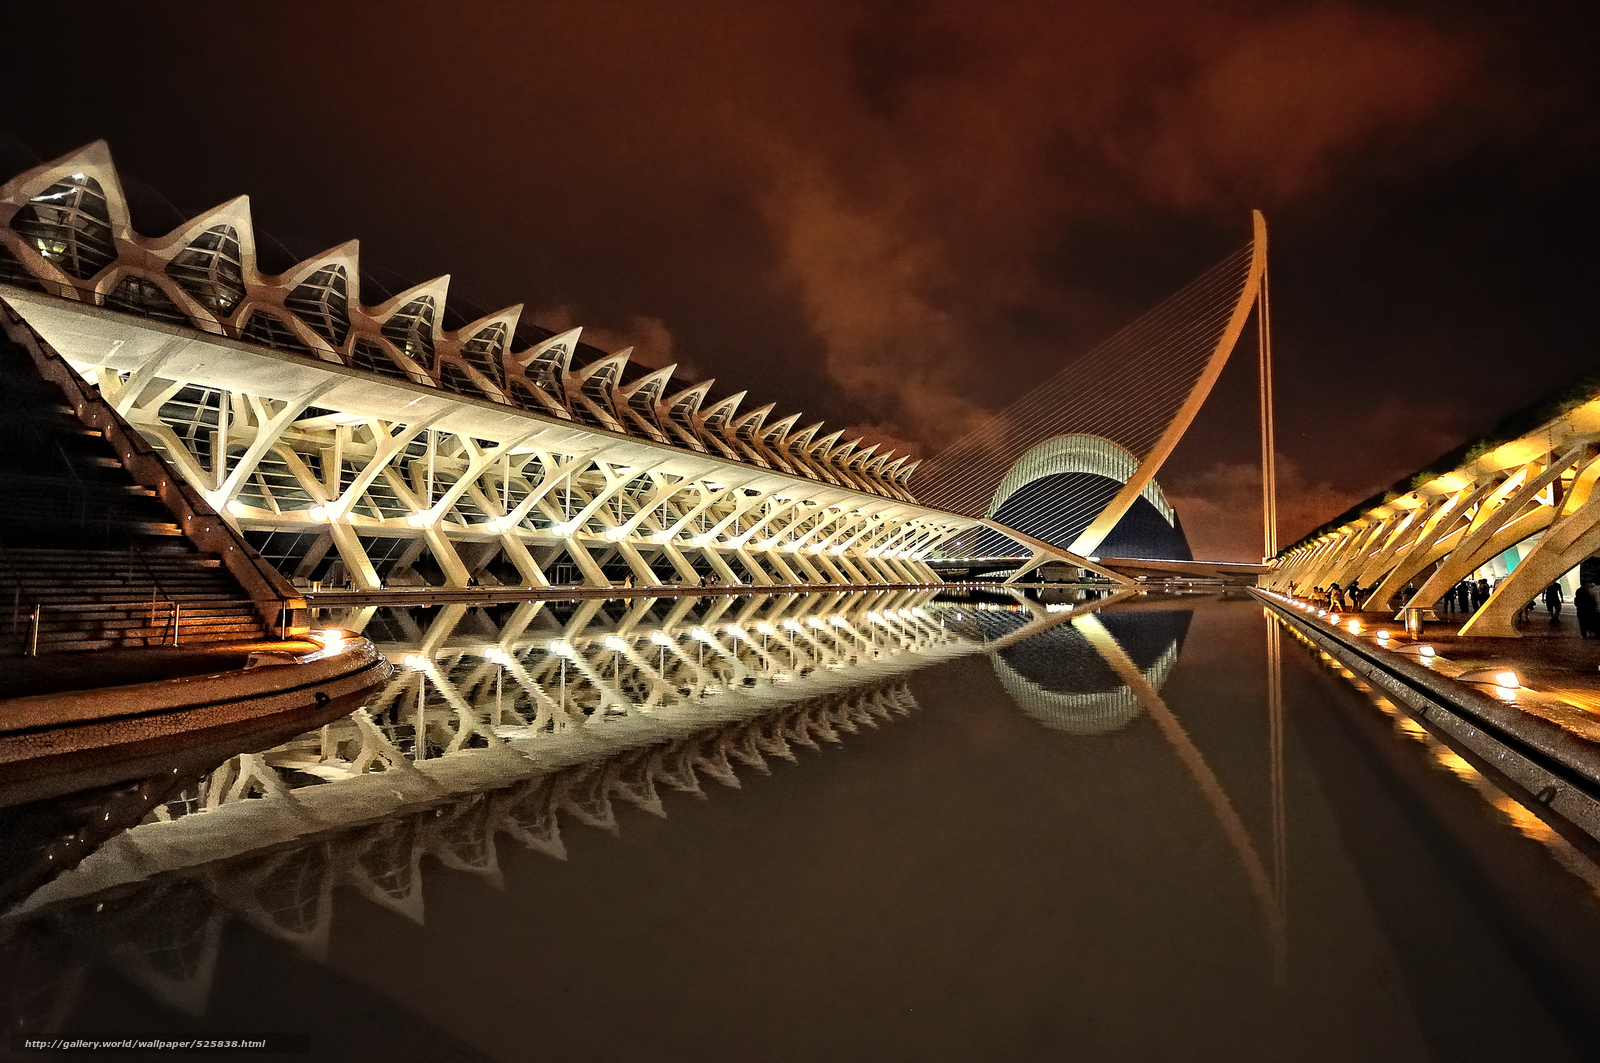 Download wallpaper Night City of Arts and Sciences, valencia ...